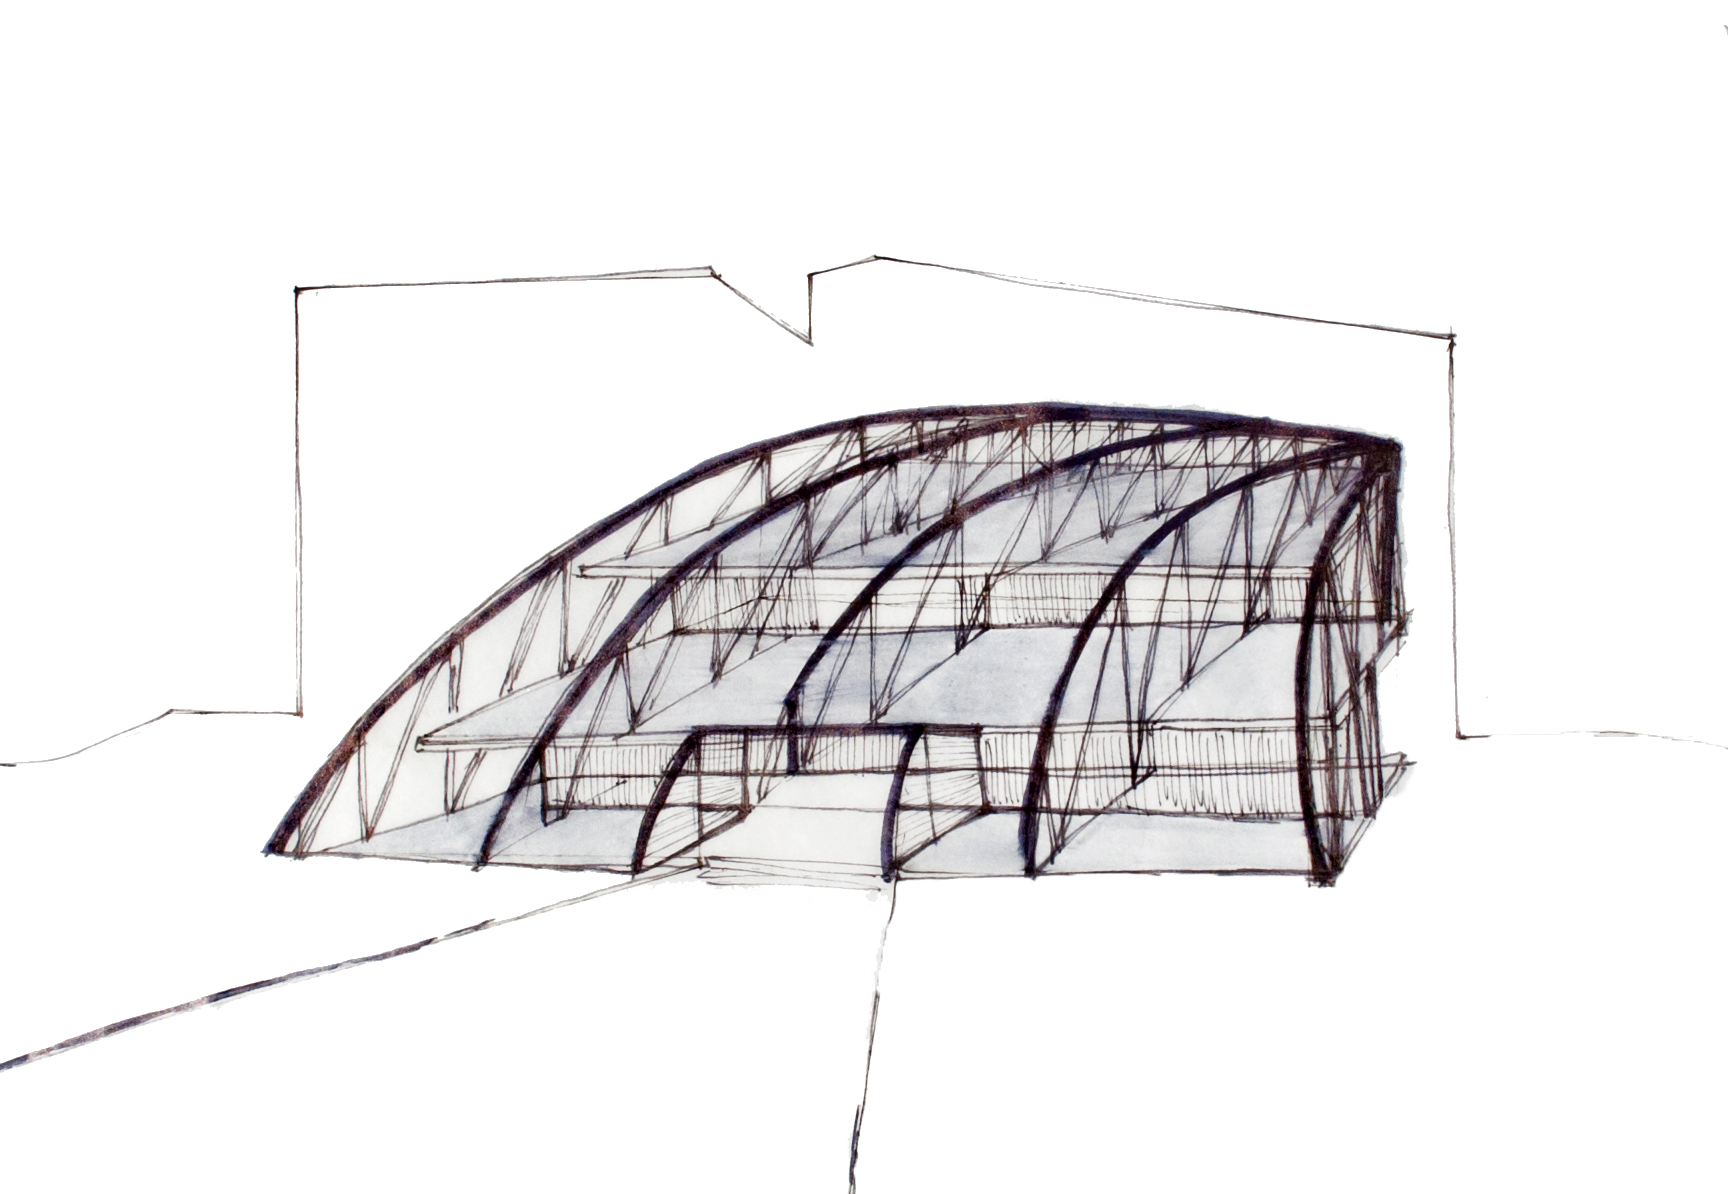 Initial sketch of dining structure and site.